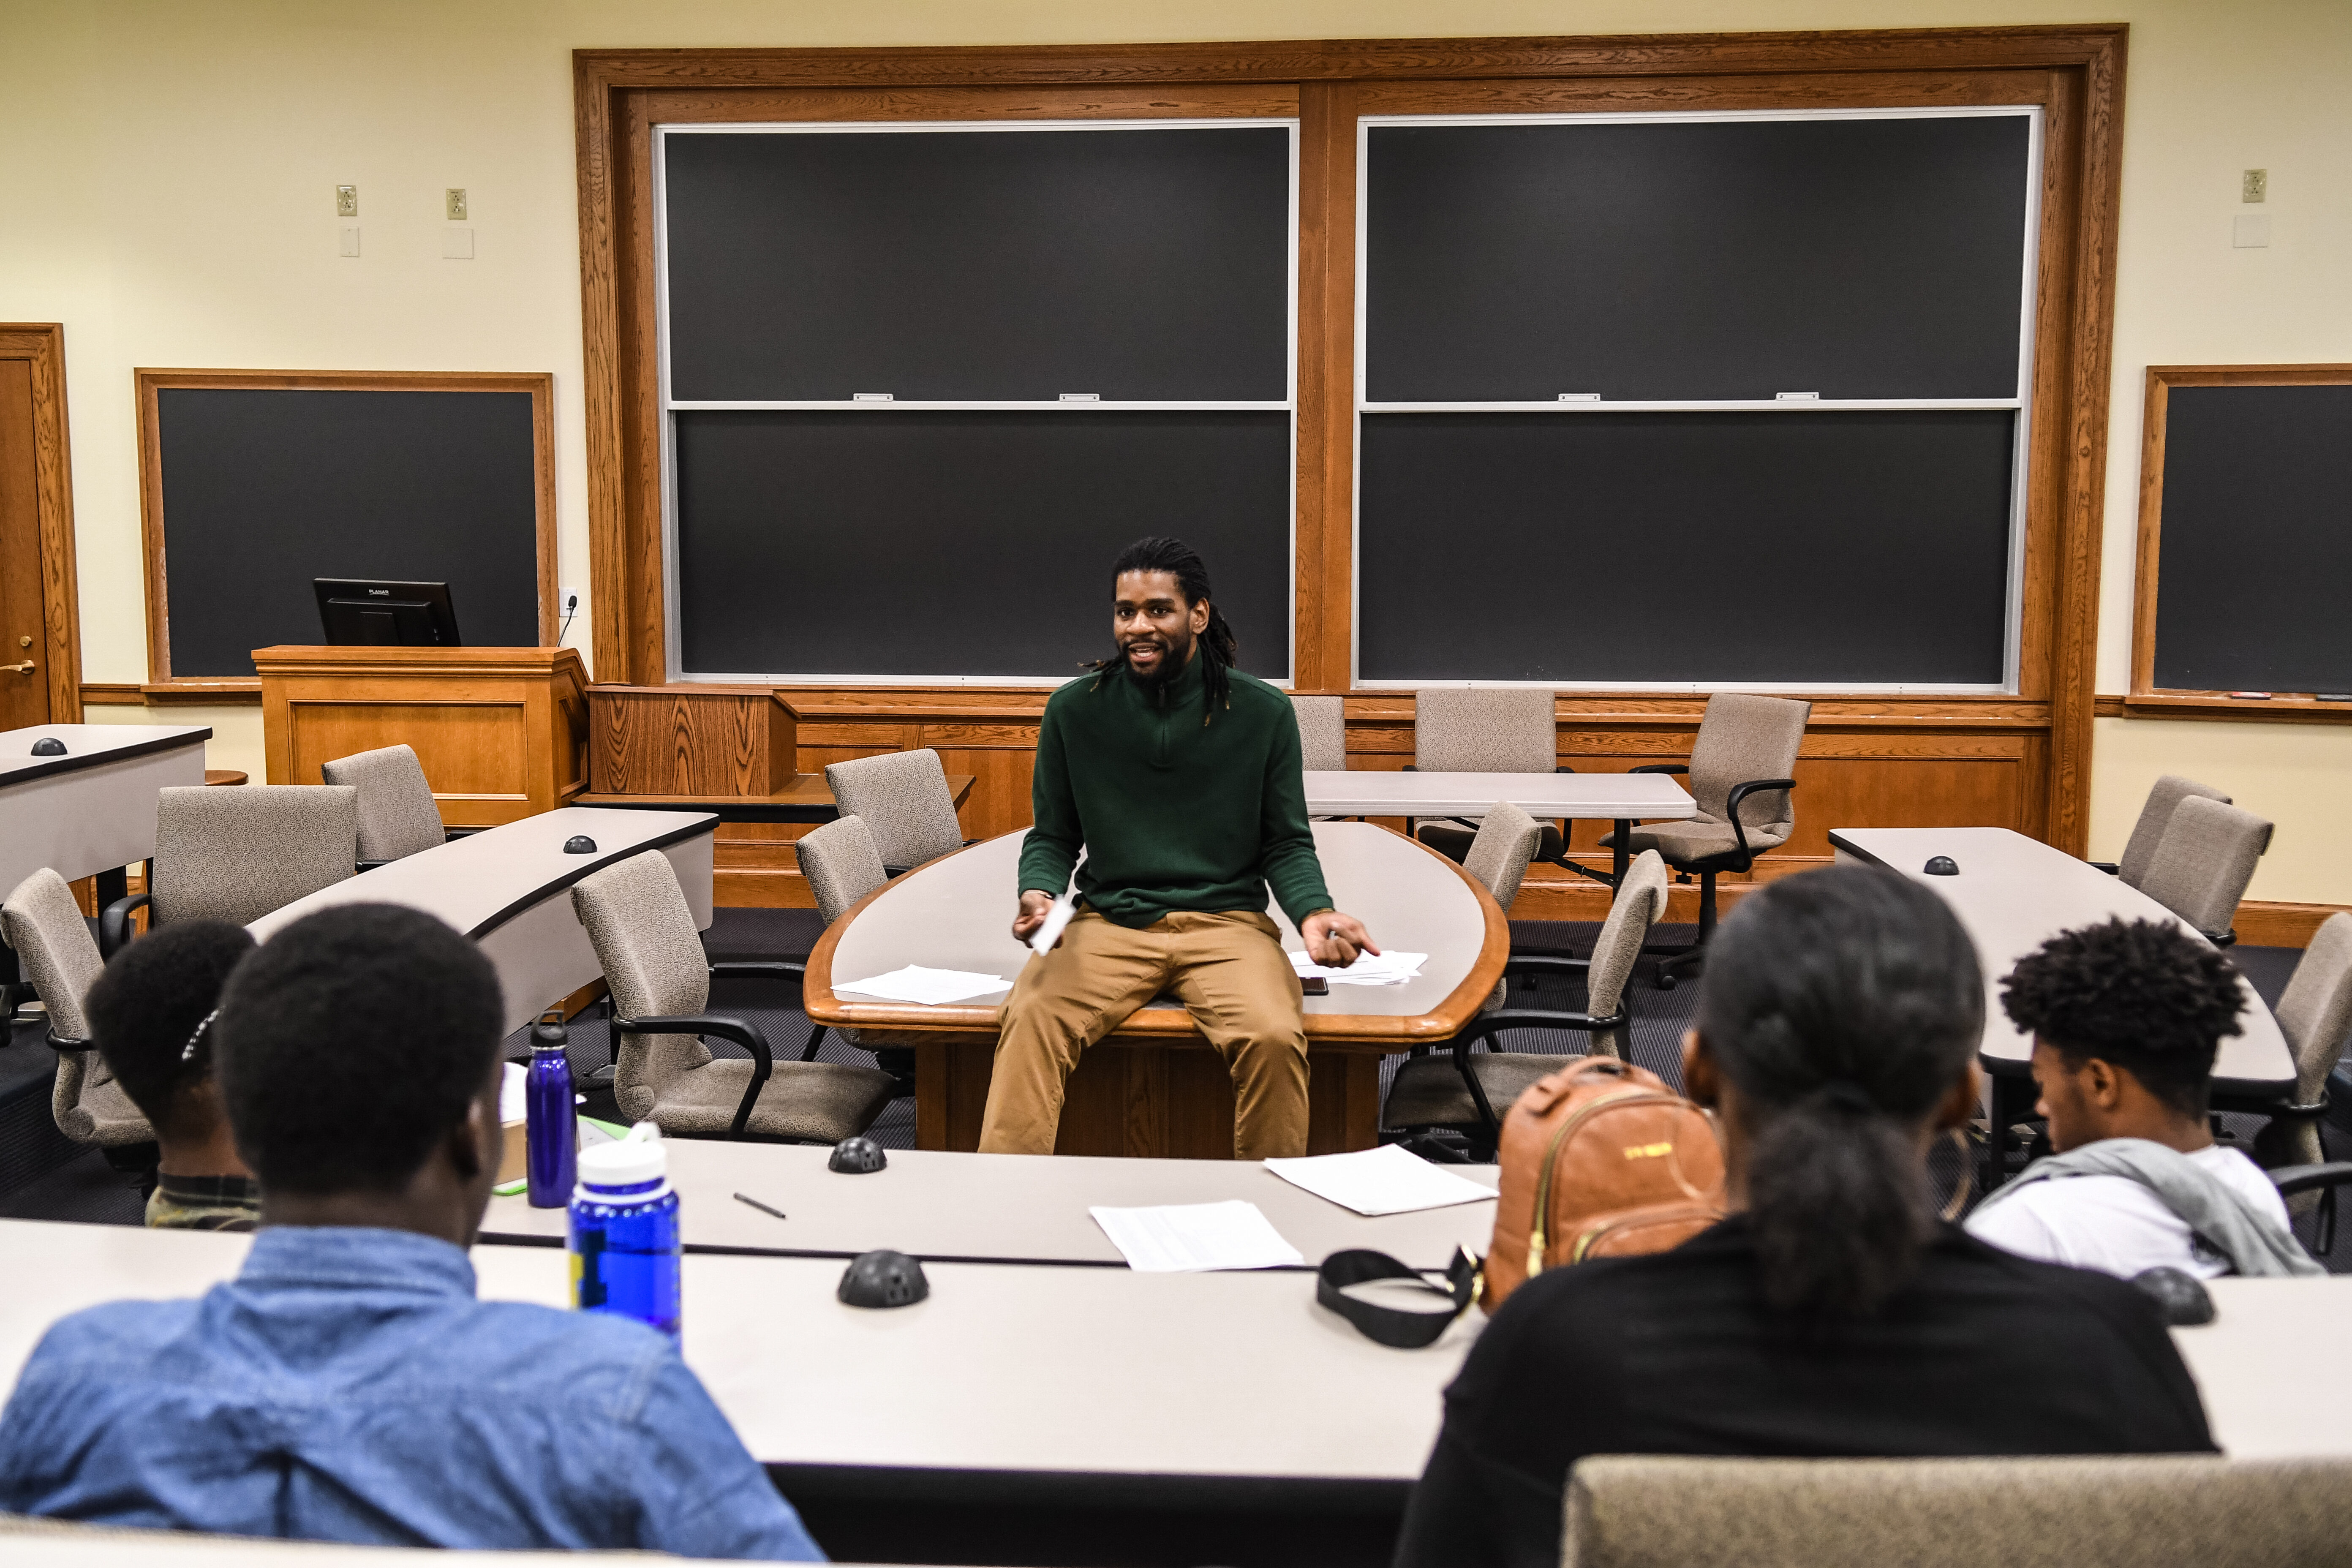 An instructor (shown from front) sits on a table, addressing students (shown from back) sitting at desks across from him.